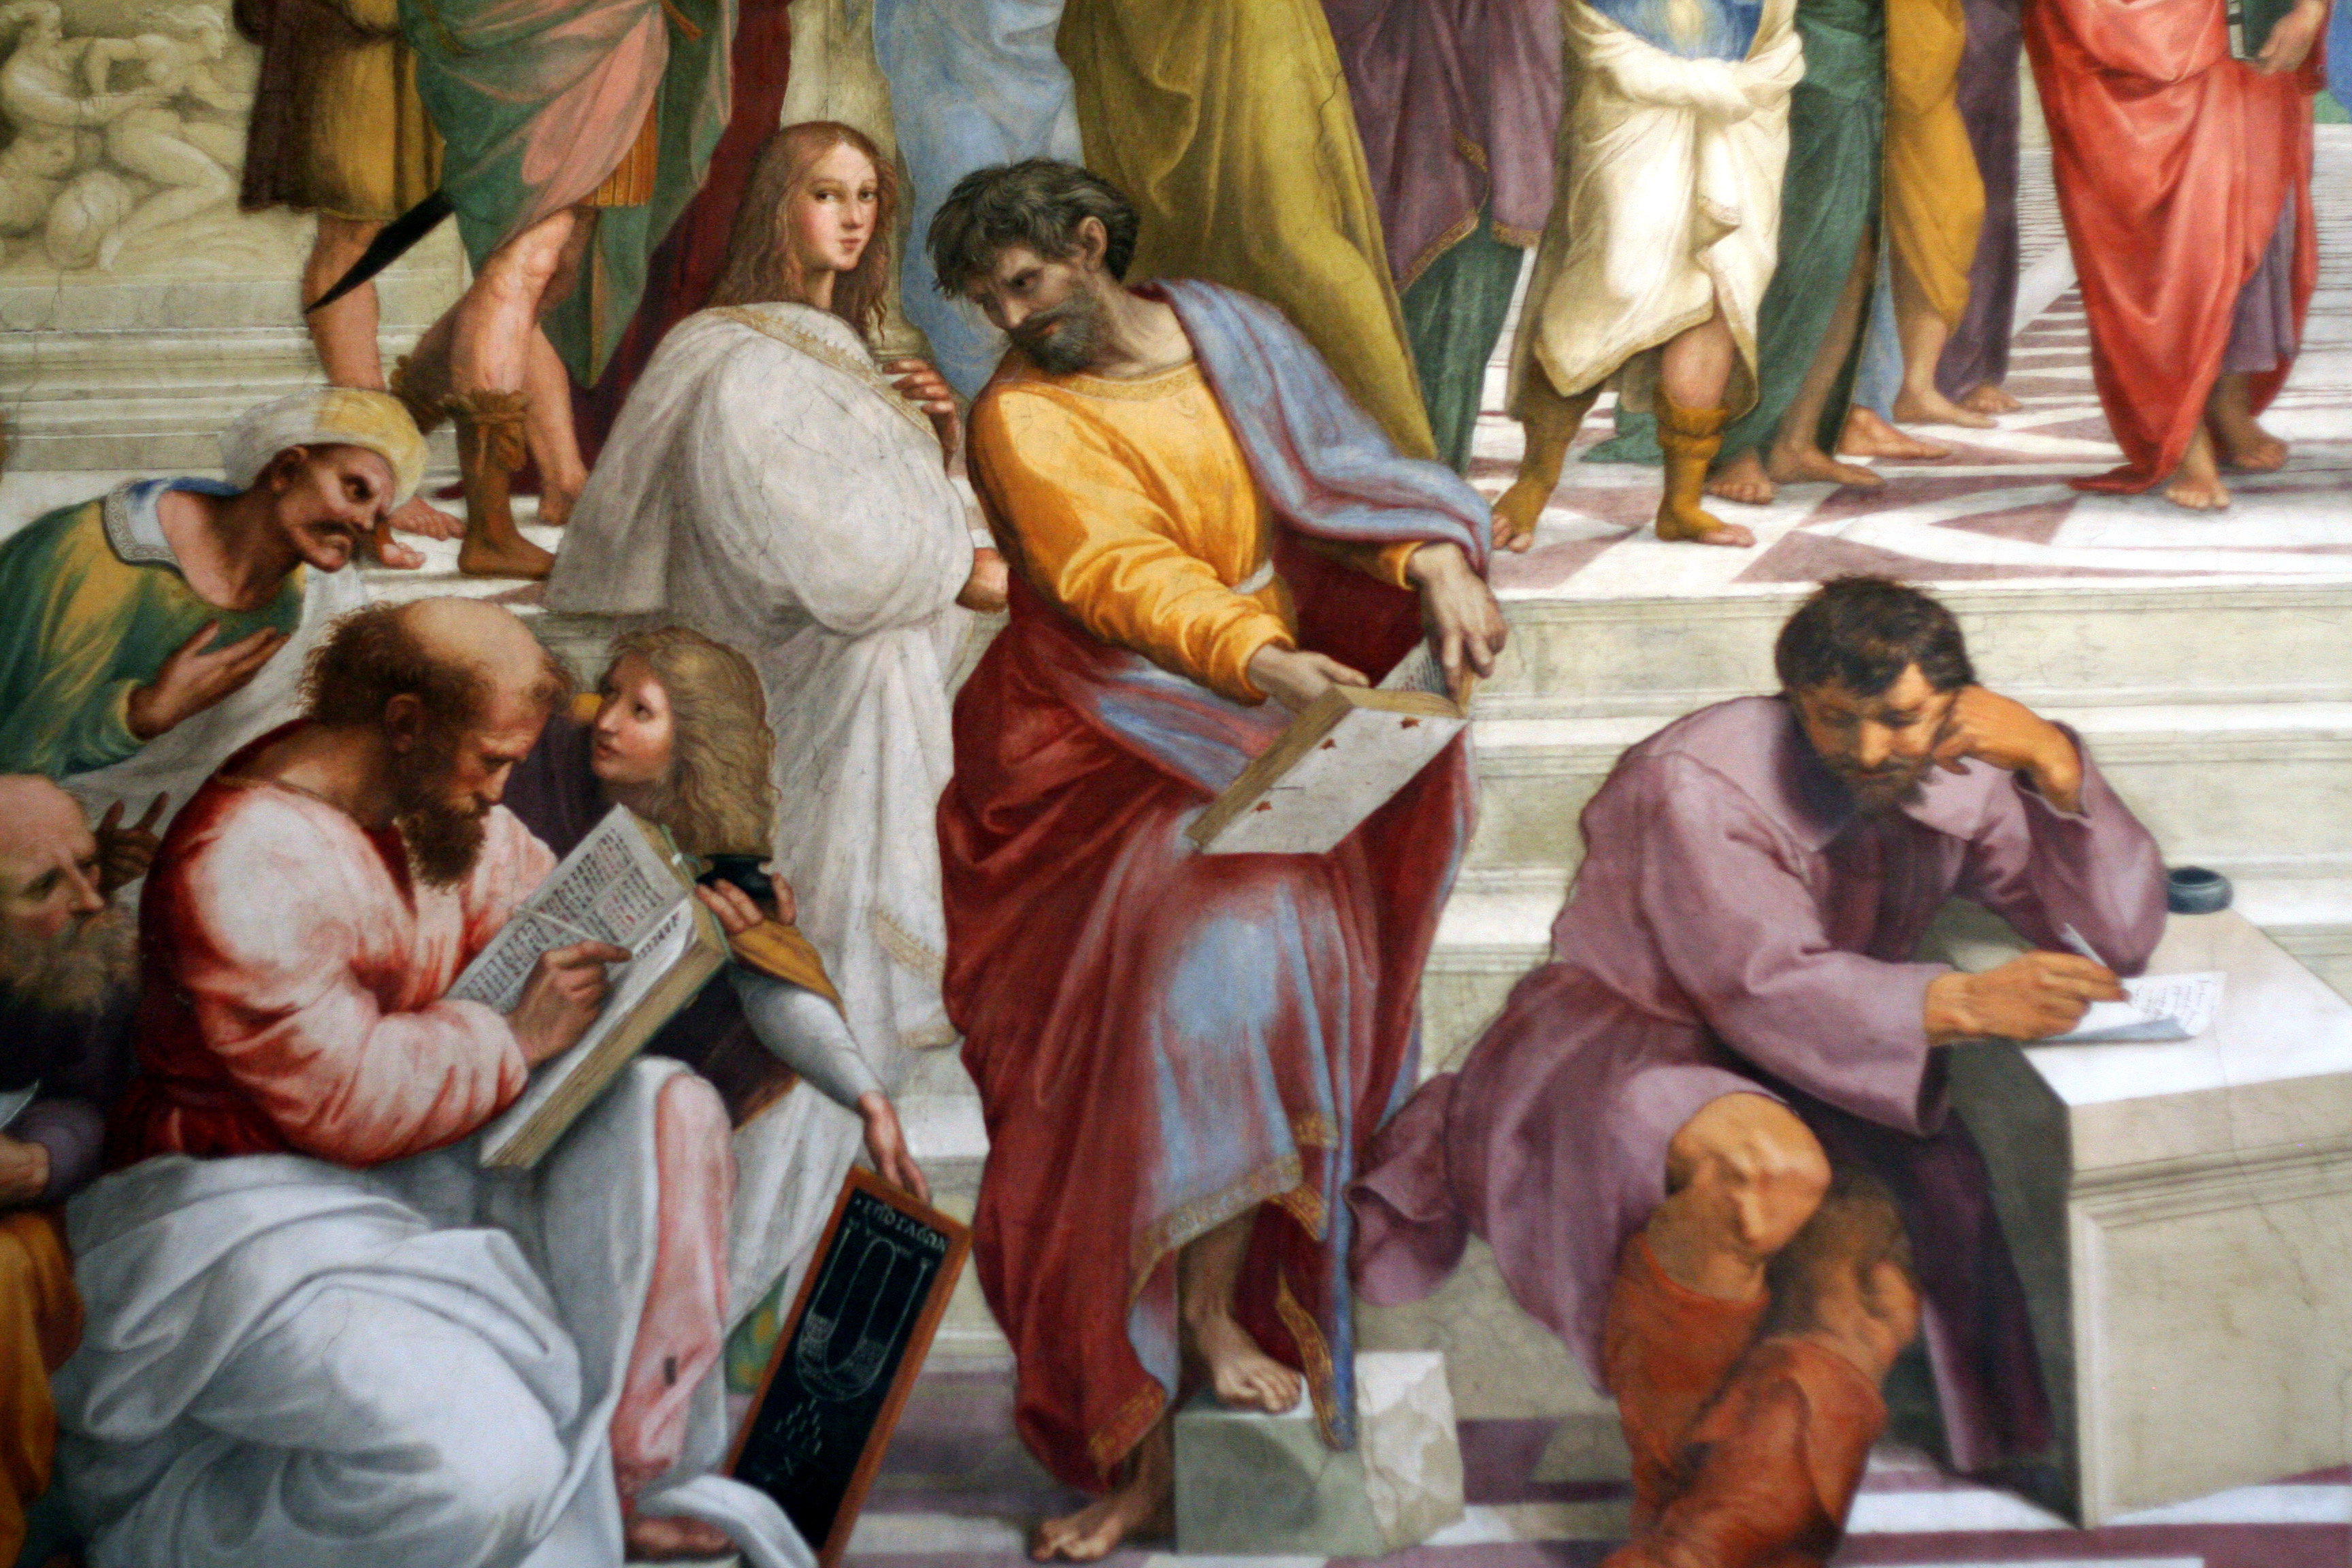 an analysis of the school of athens a fresco by rafael sanzio The school of athens i chose to analyze a piece of artwork painted by raffaello sanzio, called a fresco, which is titled school of athens a fresco, according to dictionarycom is the art or technique of painting on a moist, plaster surface with colors ground up in water or a limewater mixture.